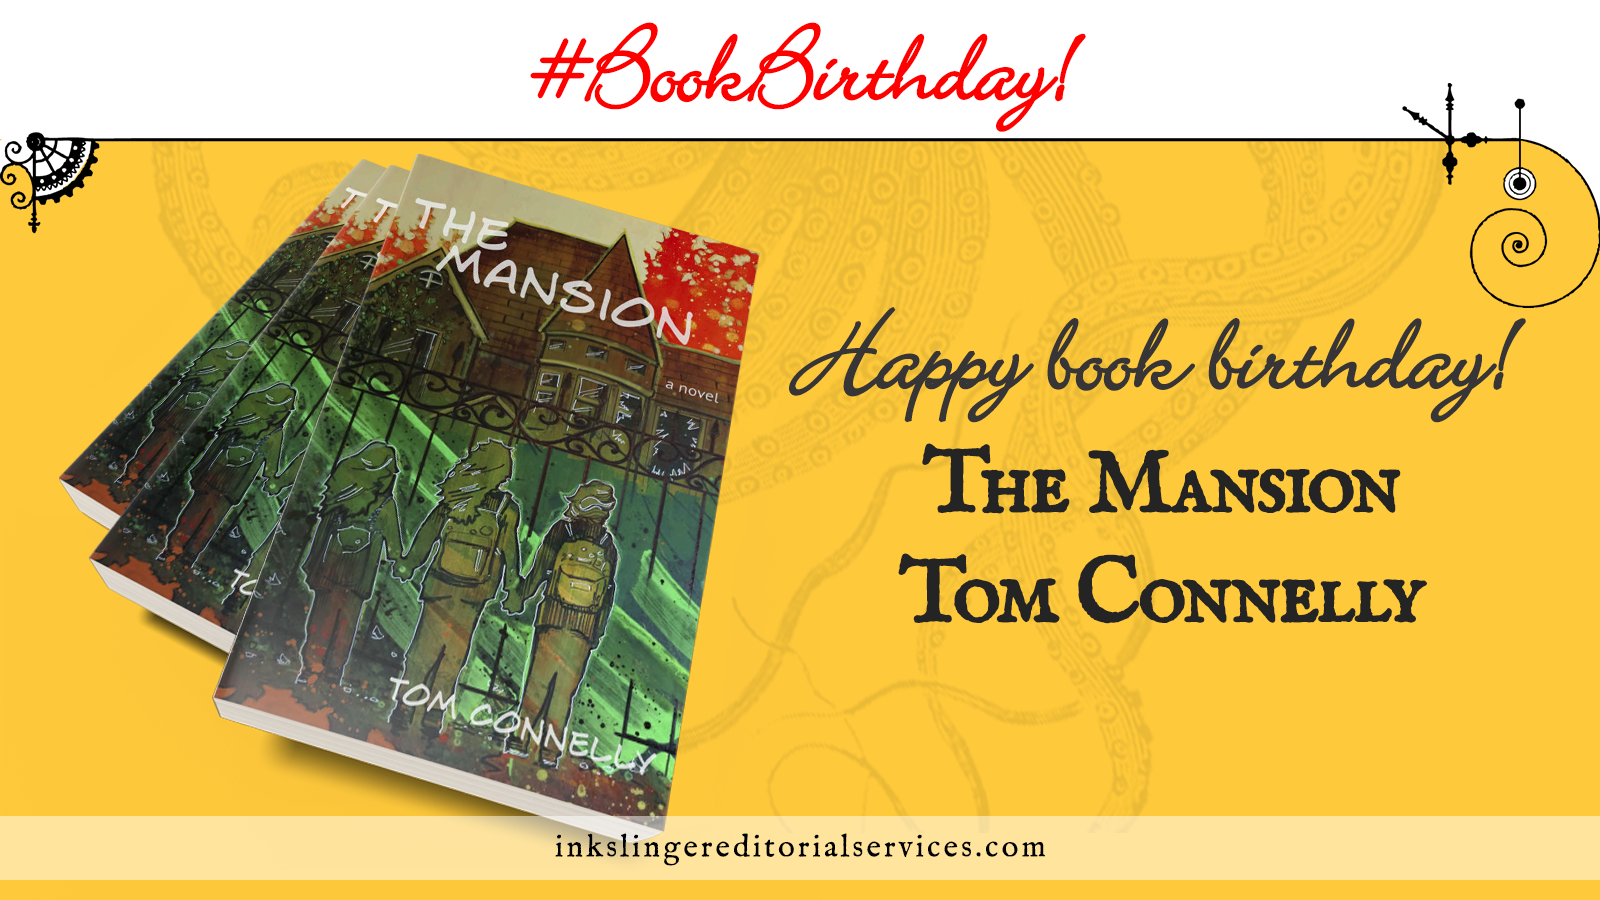 #BookBirthday! Happy book birthday! The Mansion by Tom Connelly. 3 copies of The Mansion are stacked on a field of yellow with faded tentacles in the background.